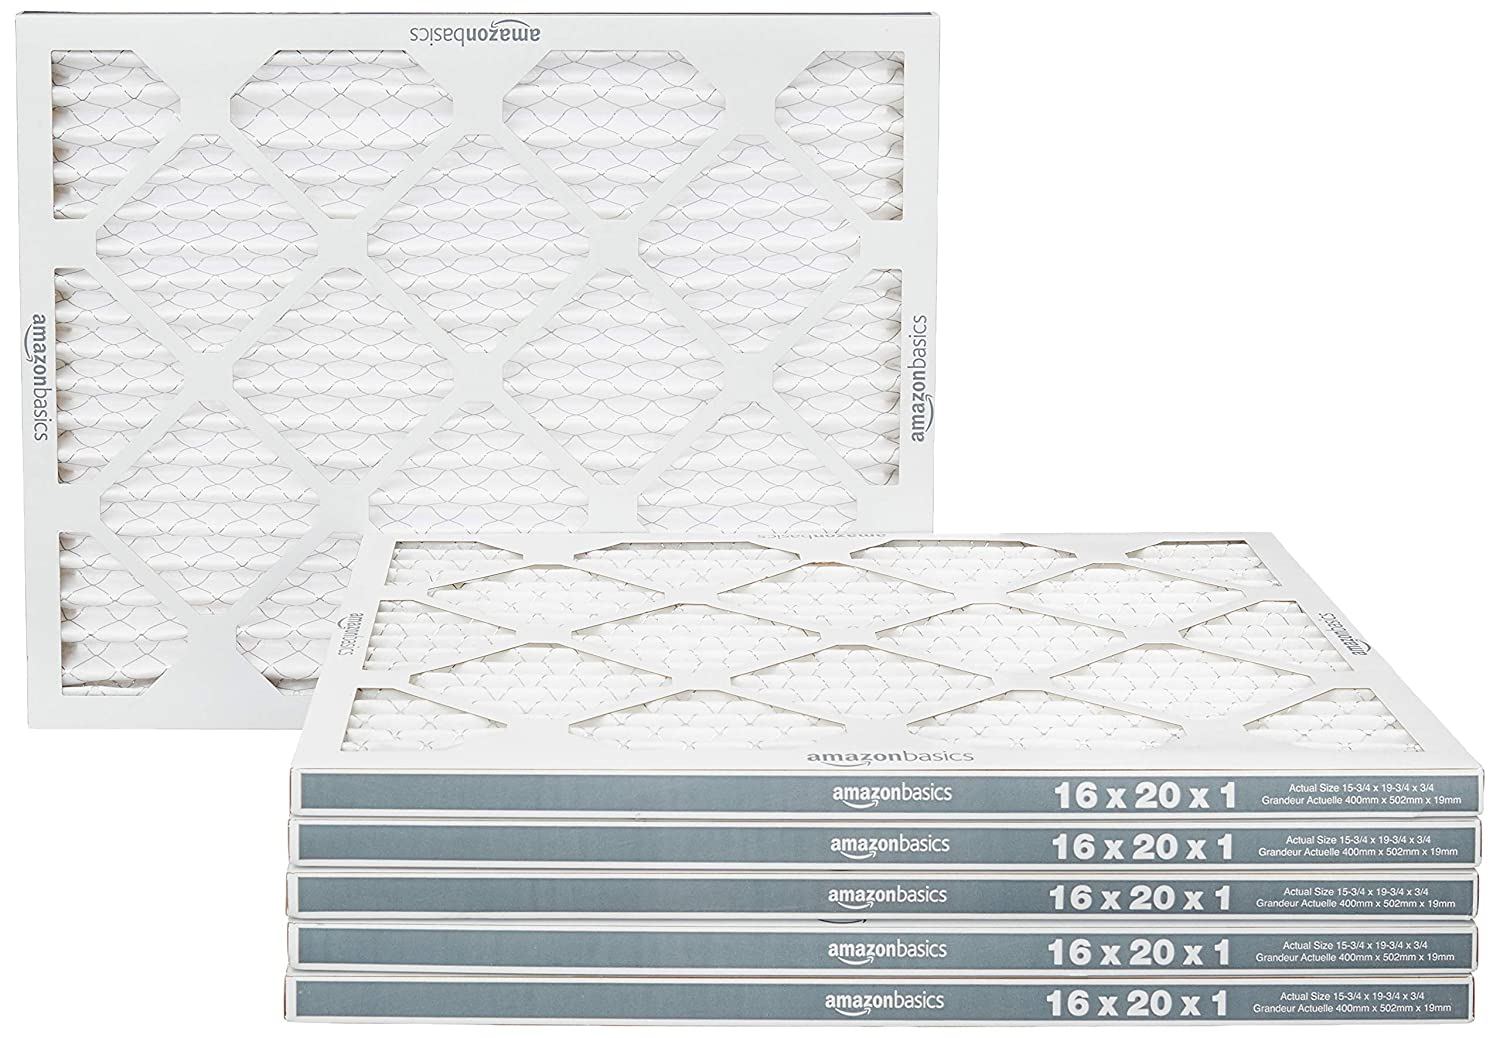 AmazonBasics Merv 11 AC Furnace Air Filter - 16'' x 20'' x 1'', 6-Pack